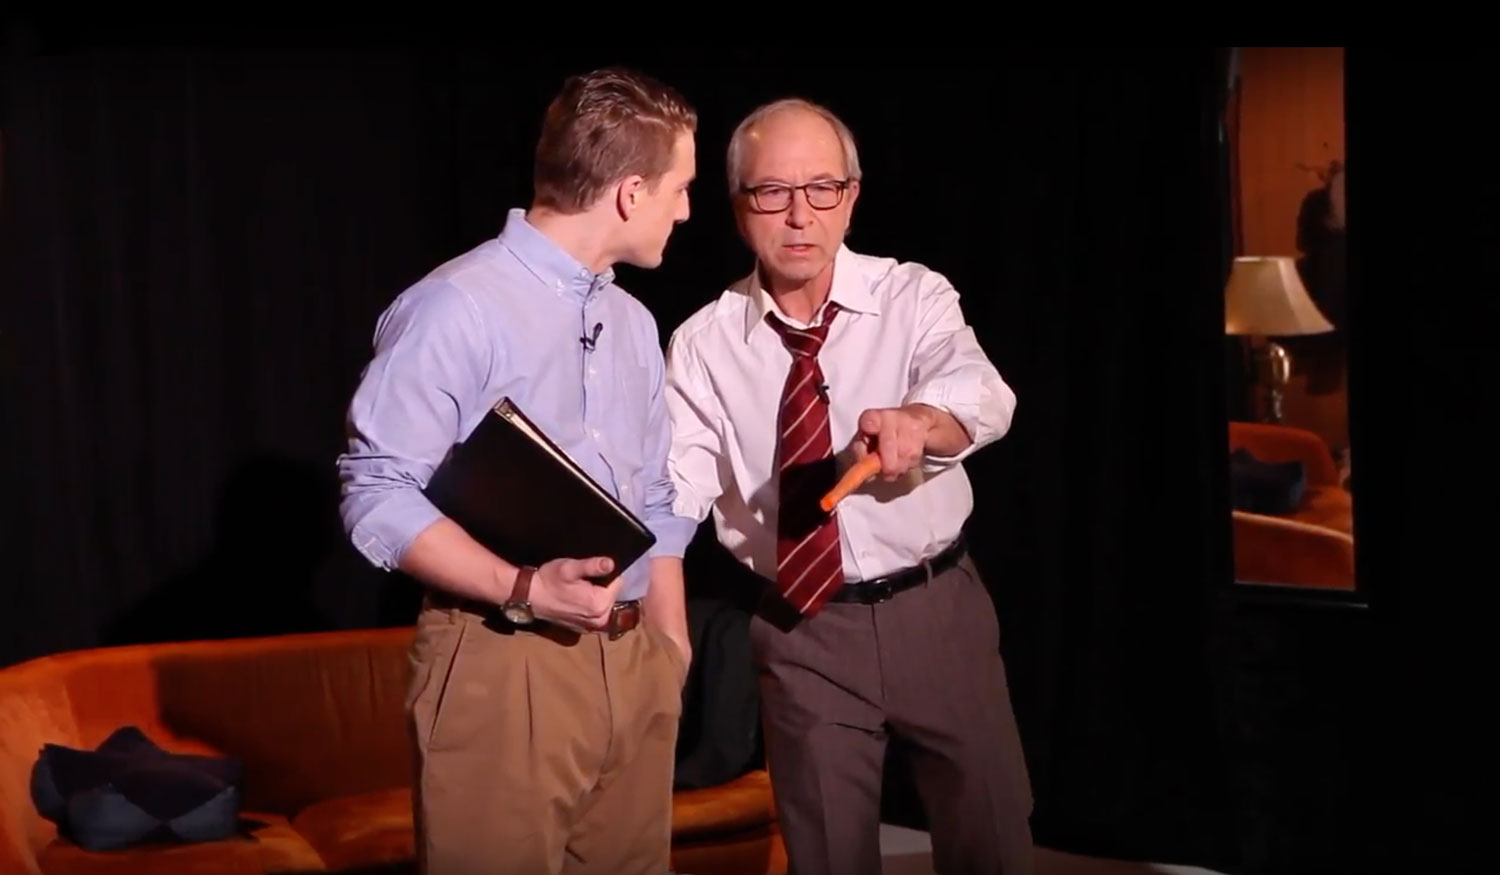 Actors Bob Weick (right) playing Nick Virgilio and Ned Pryce (left).